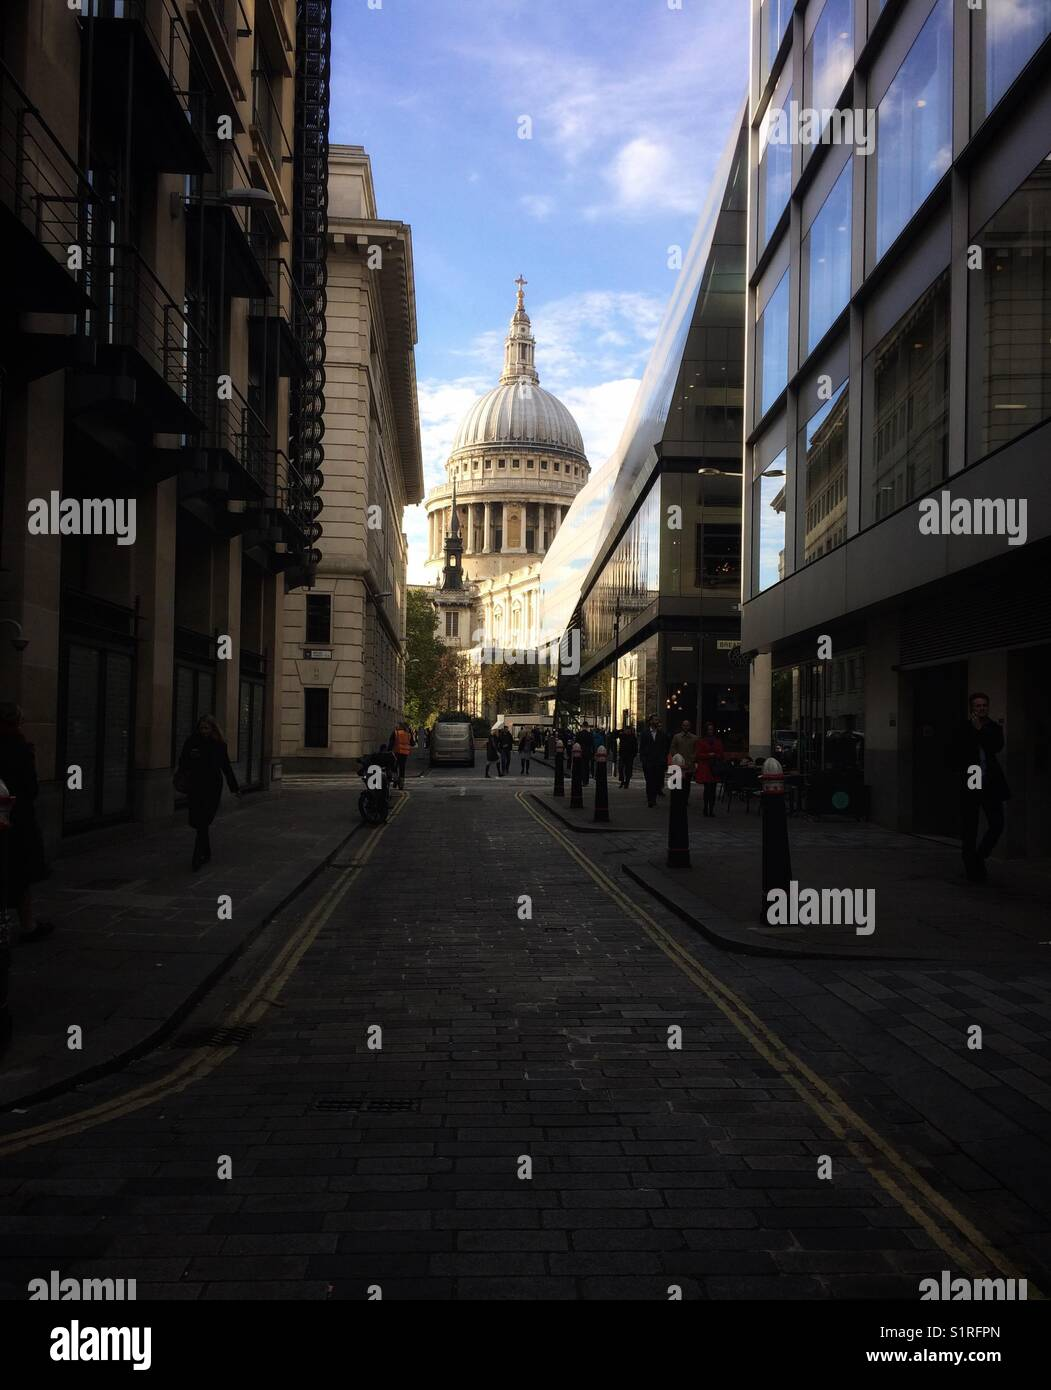 St Paul's Cathedral, One New Change, Cannon Street, London, United Kingdom - Stock Image